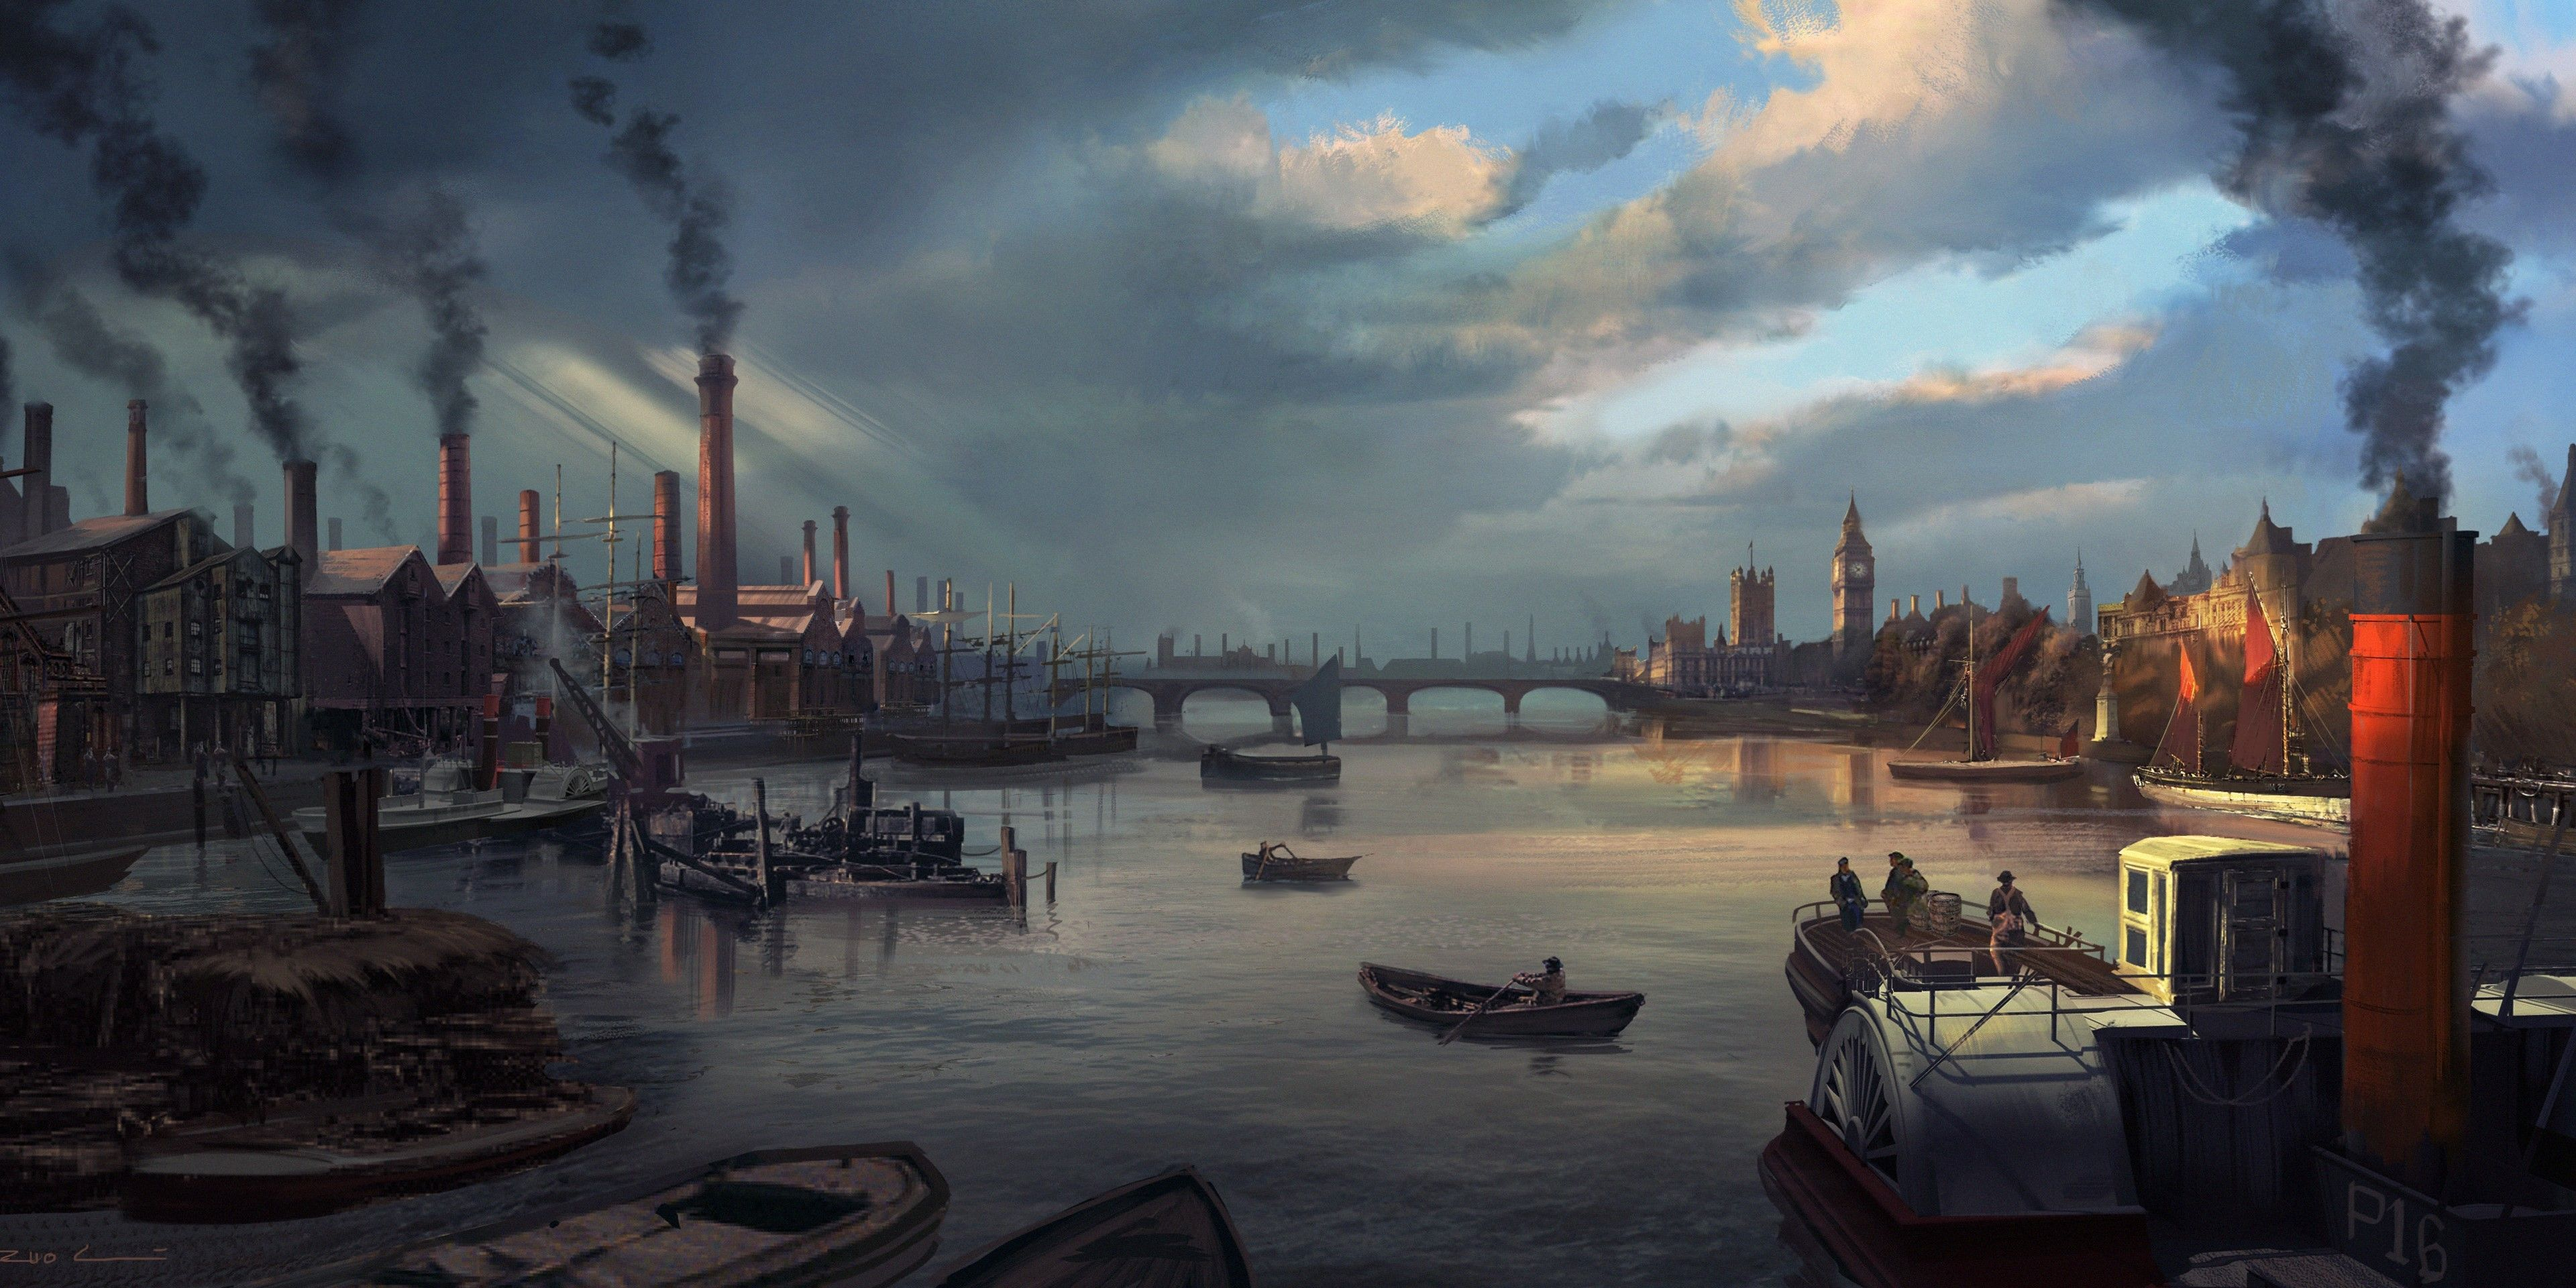 3840x1920 Assassin's Creed: Syndicate Full HD Wallpaper and Background Image ...